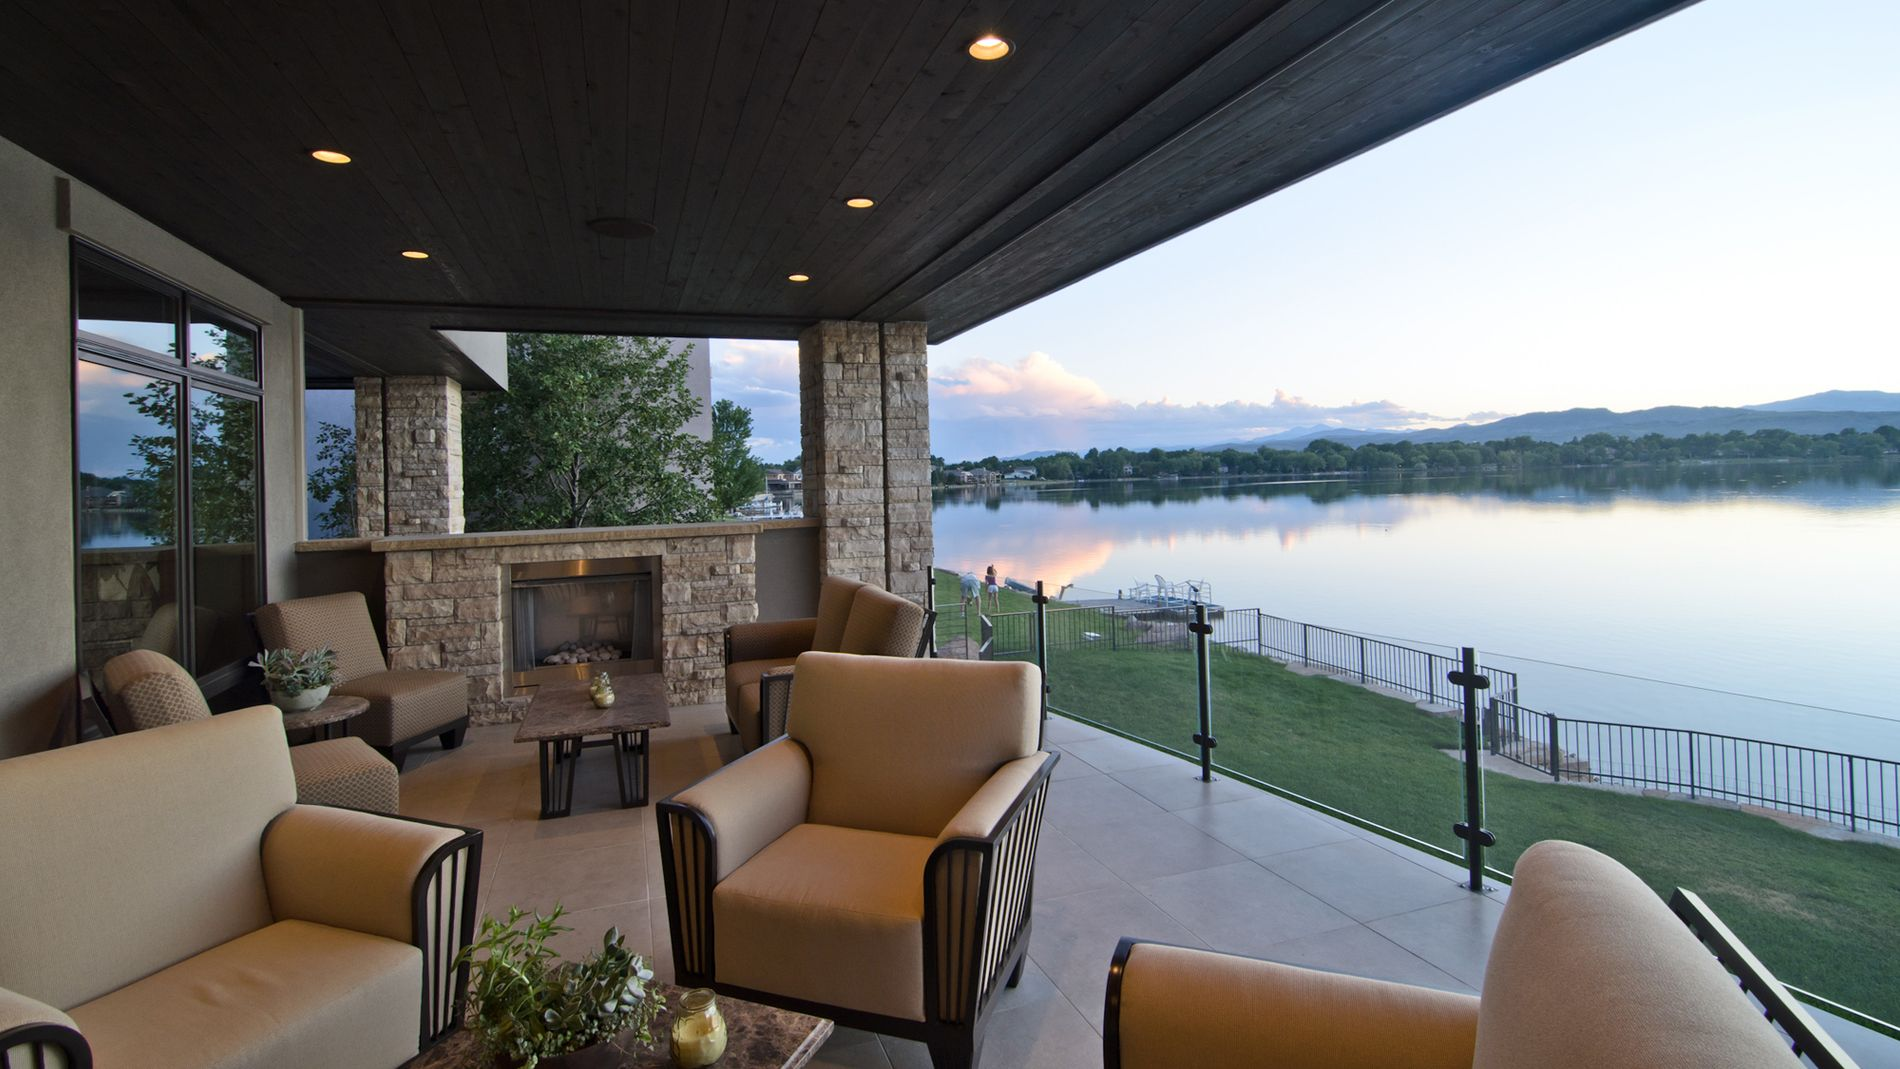 Outdoor living deck with landscape and lake views